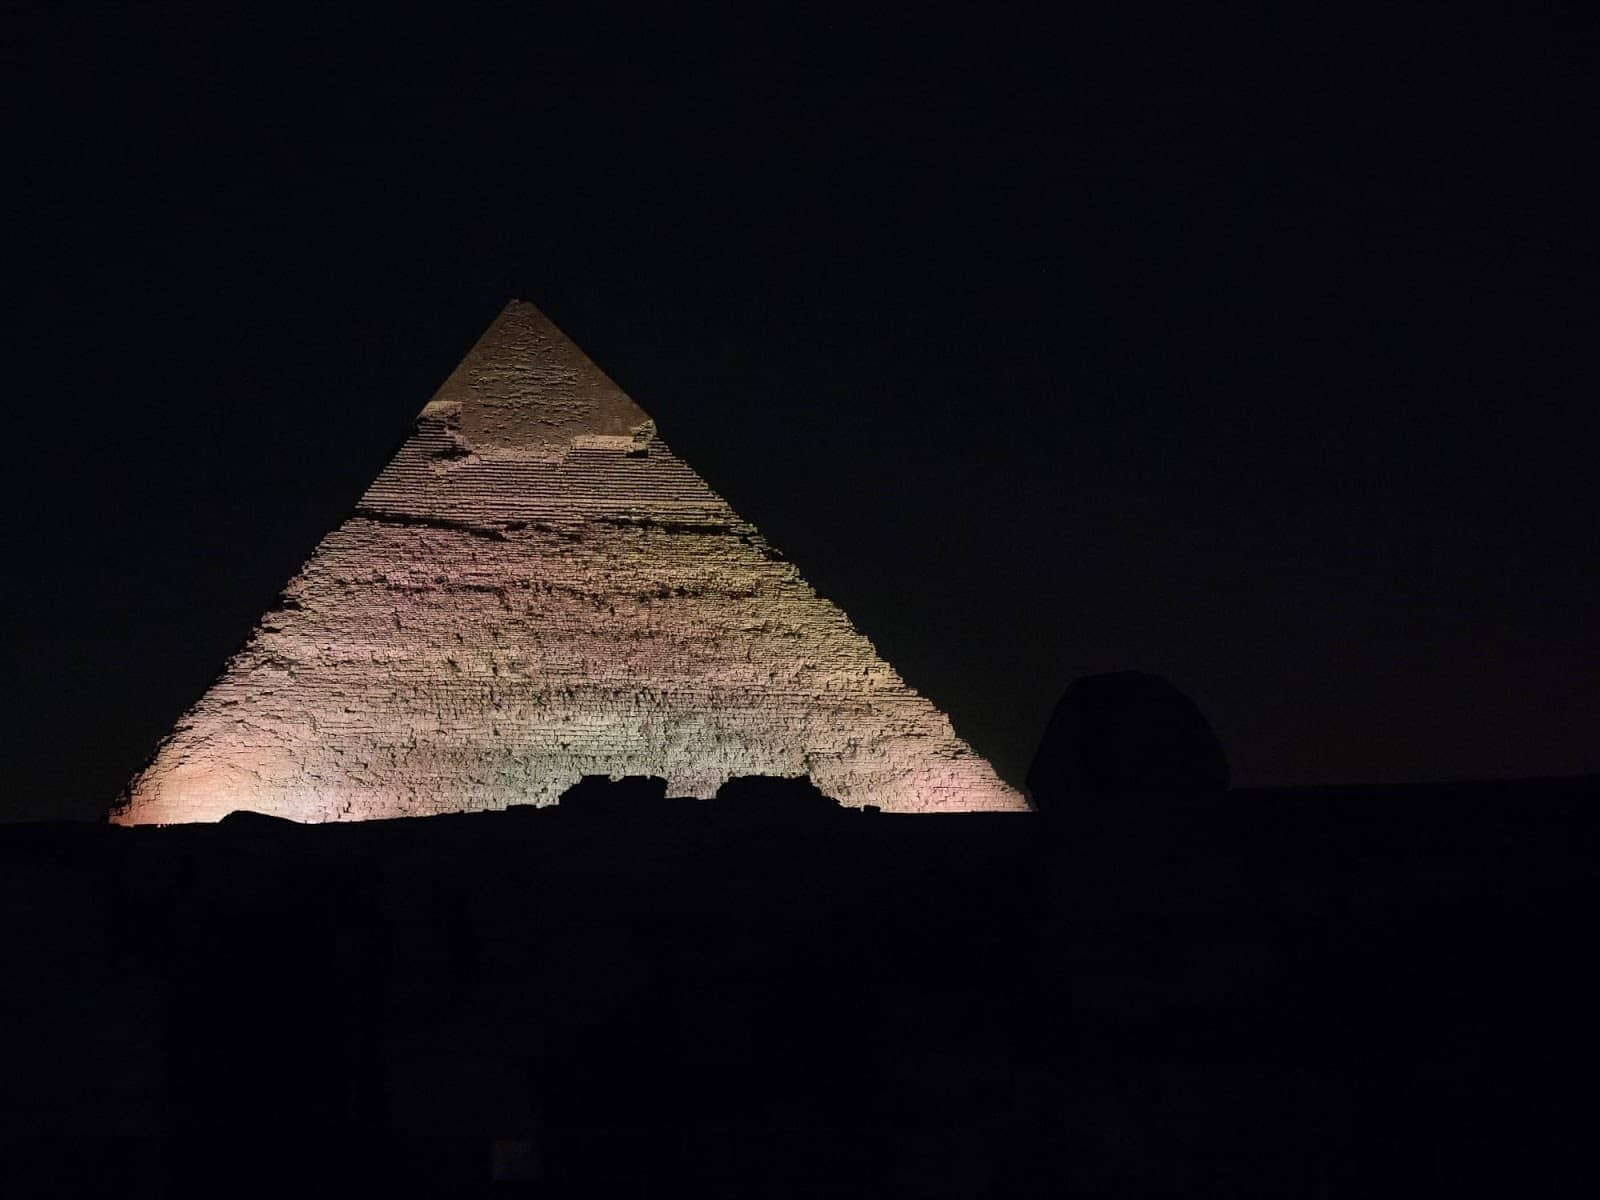 Pyramid Sound and Light Show Cairo